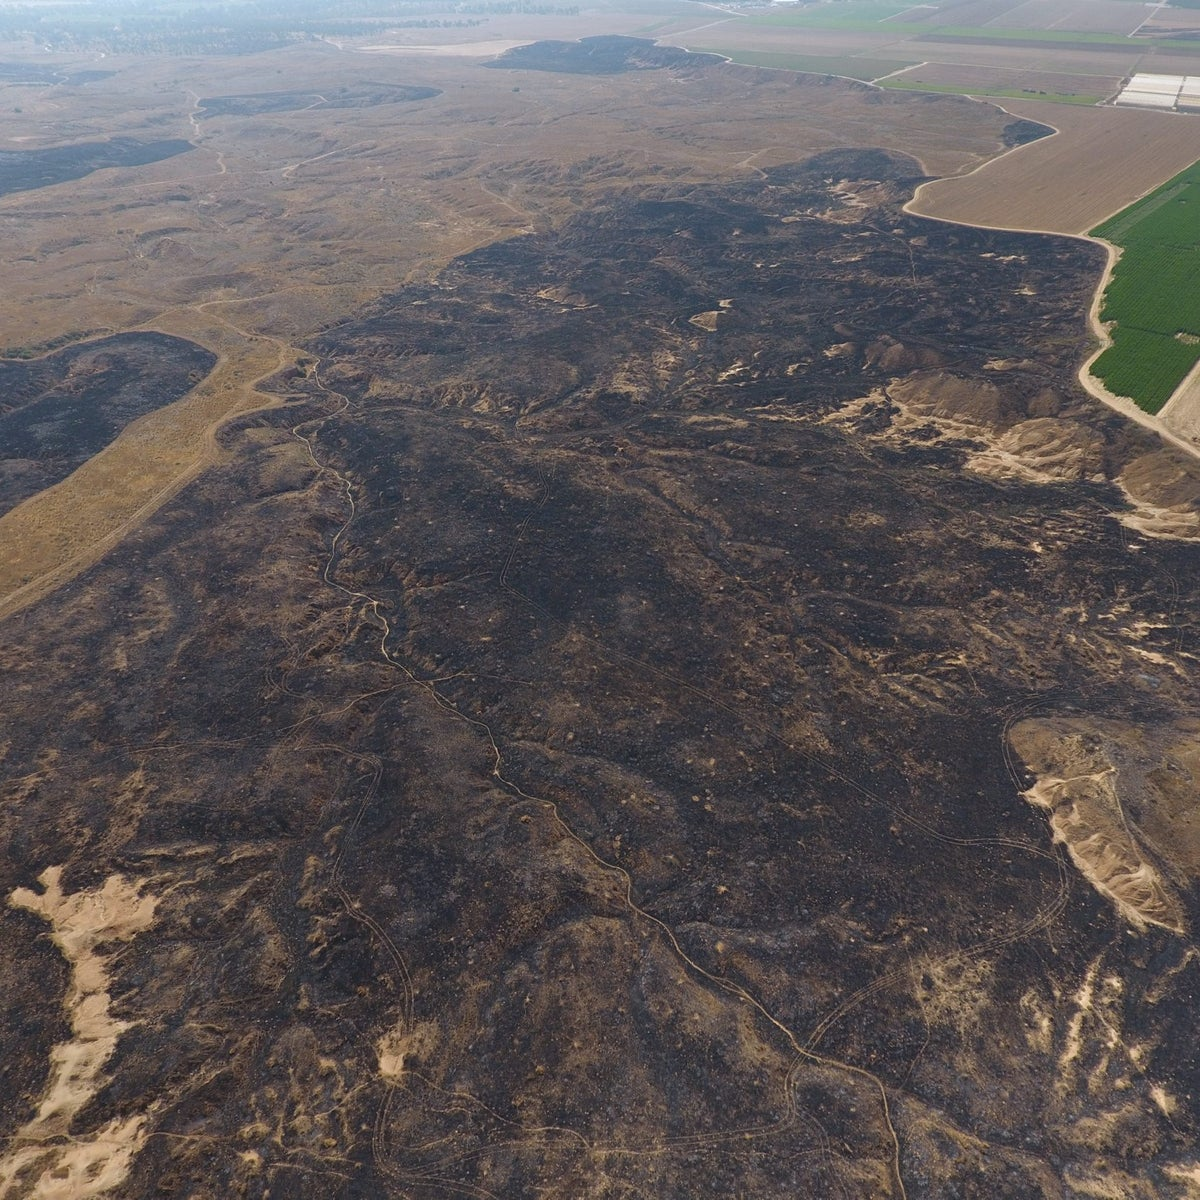 A drone photo shows the crater after the fire in Be'eri.